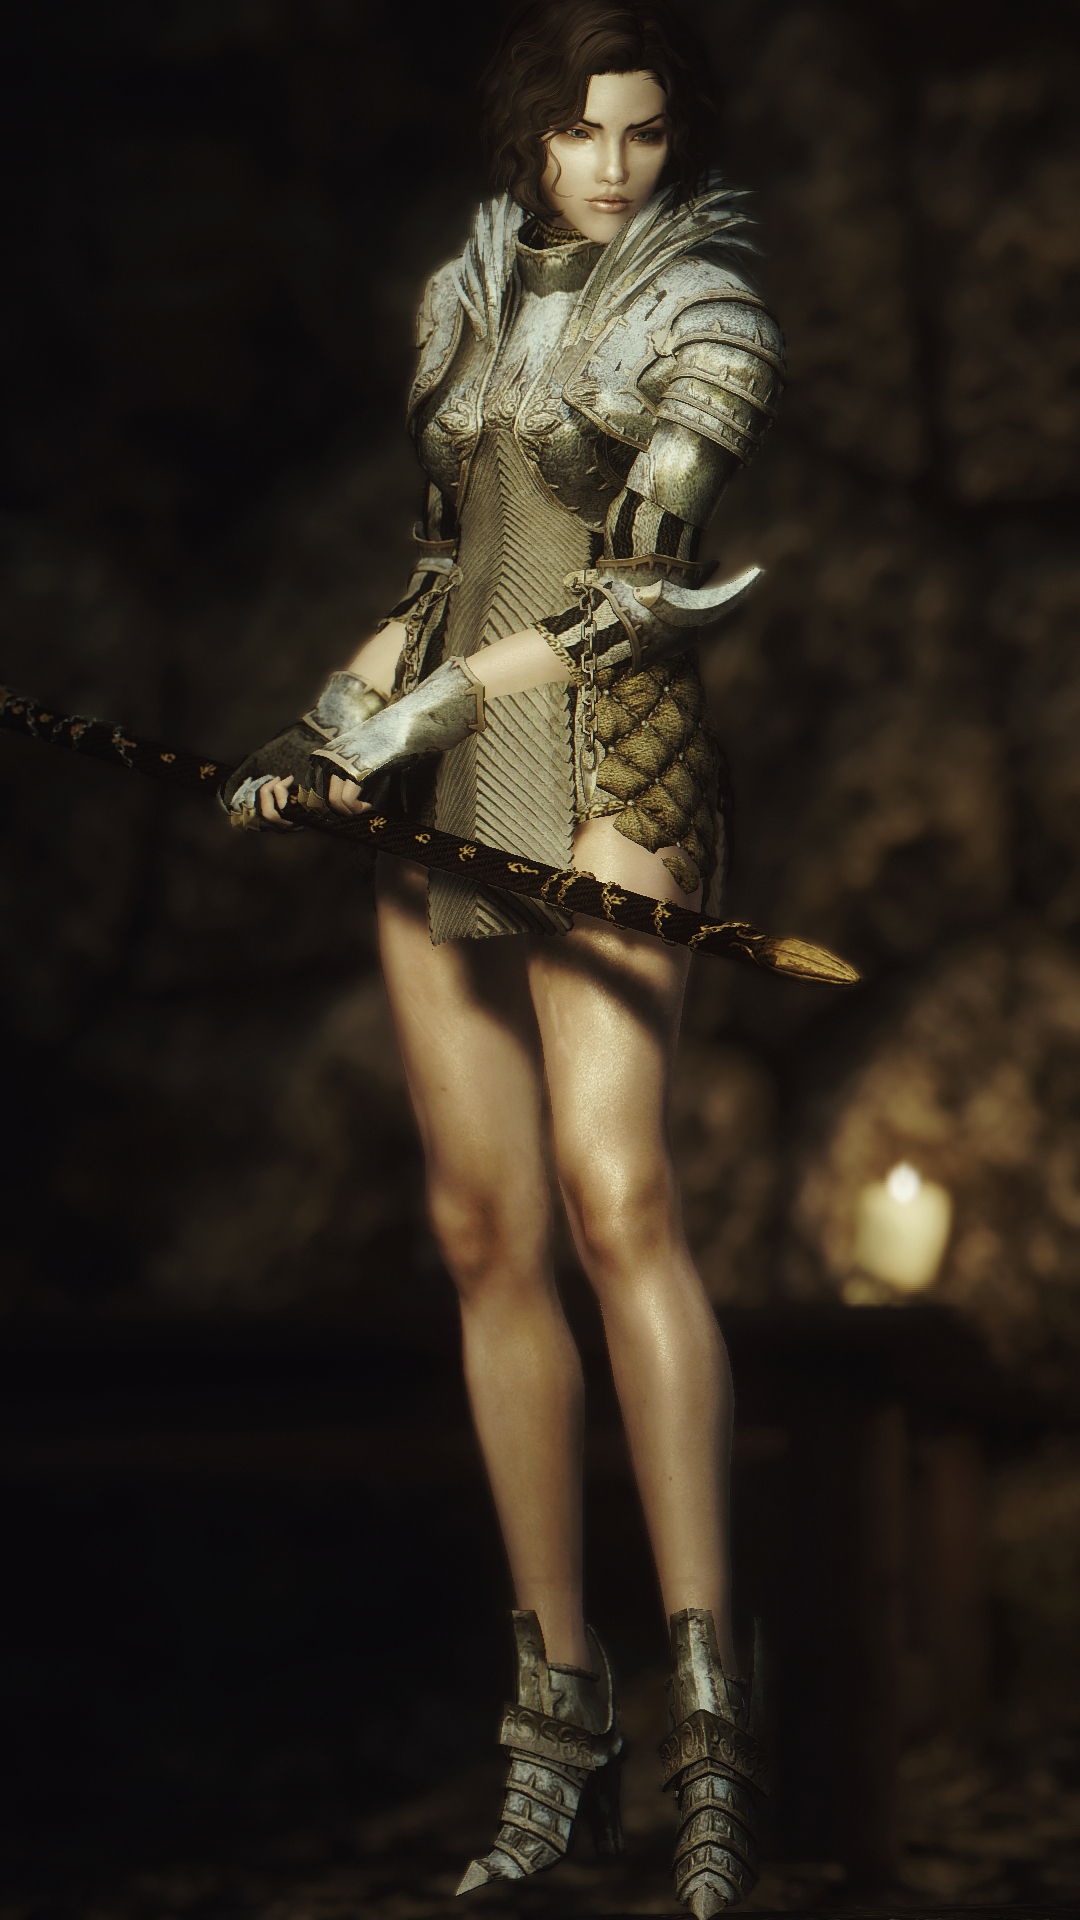 BDO Armor test at Skyrim Nexus - mods and community